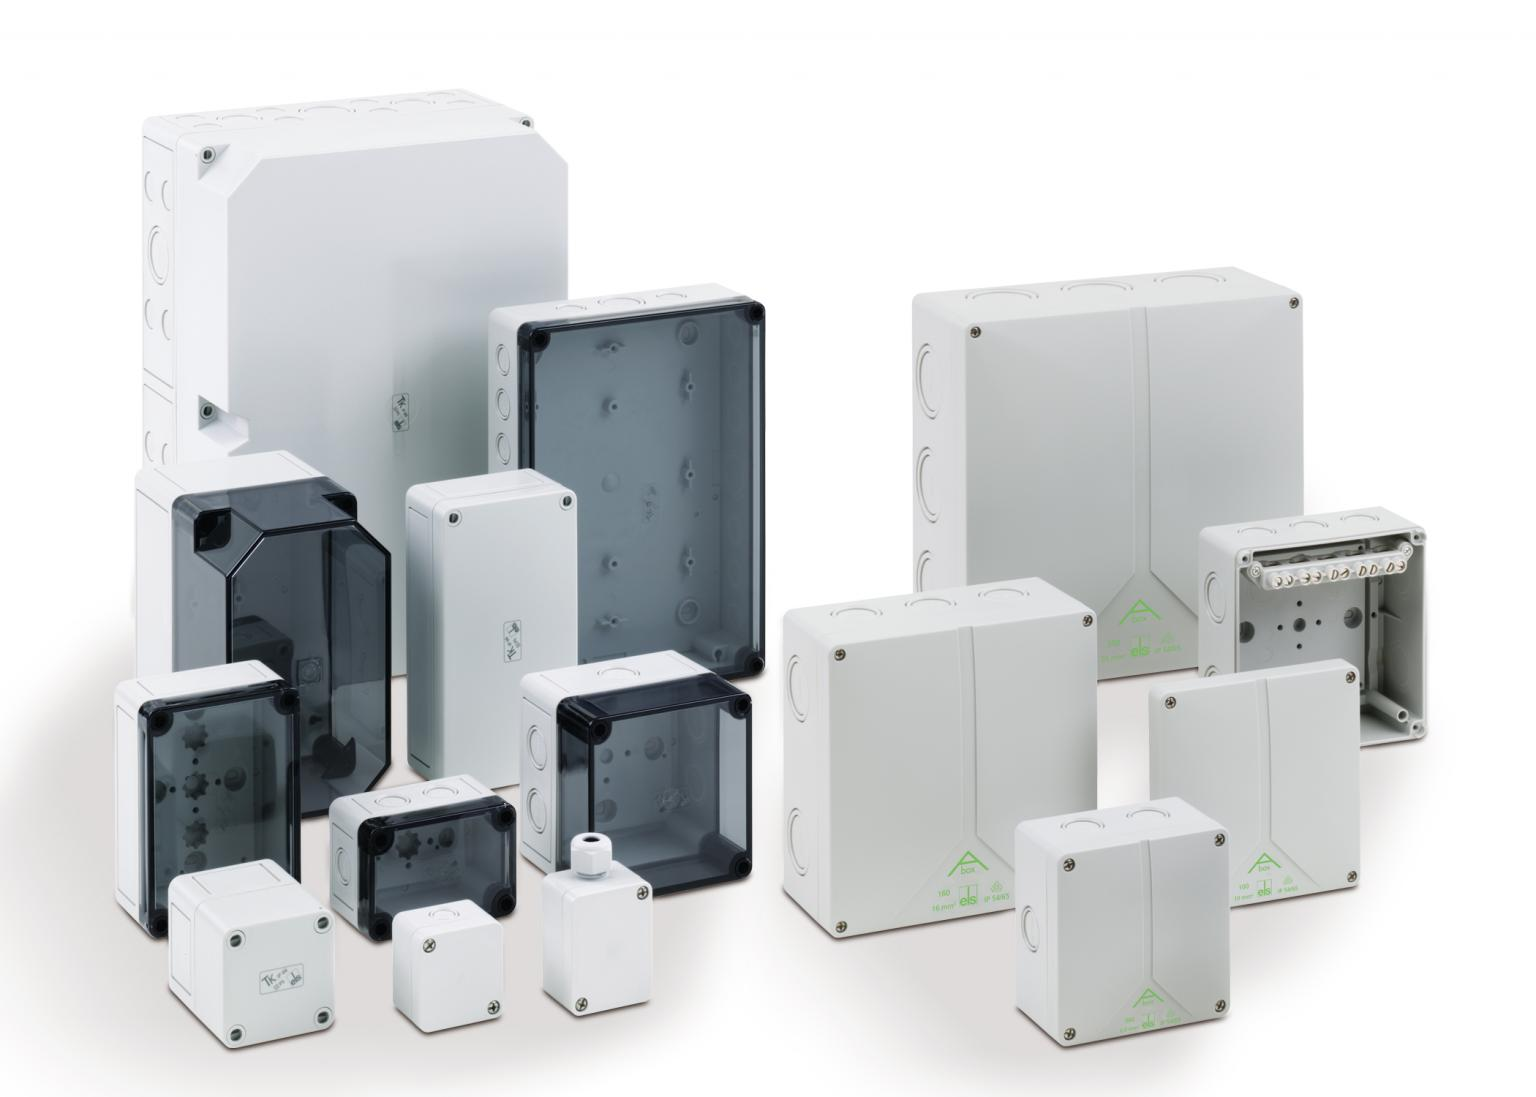 Spelsberg is one of the largest manufacturers of electrical enclosures in the world. With over 4,000 enclosures available as standard and further customisation possible, it offers solutions for almost any application